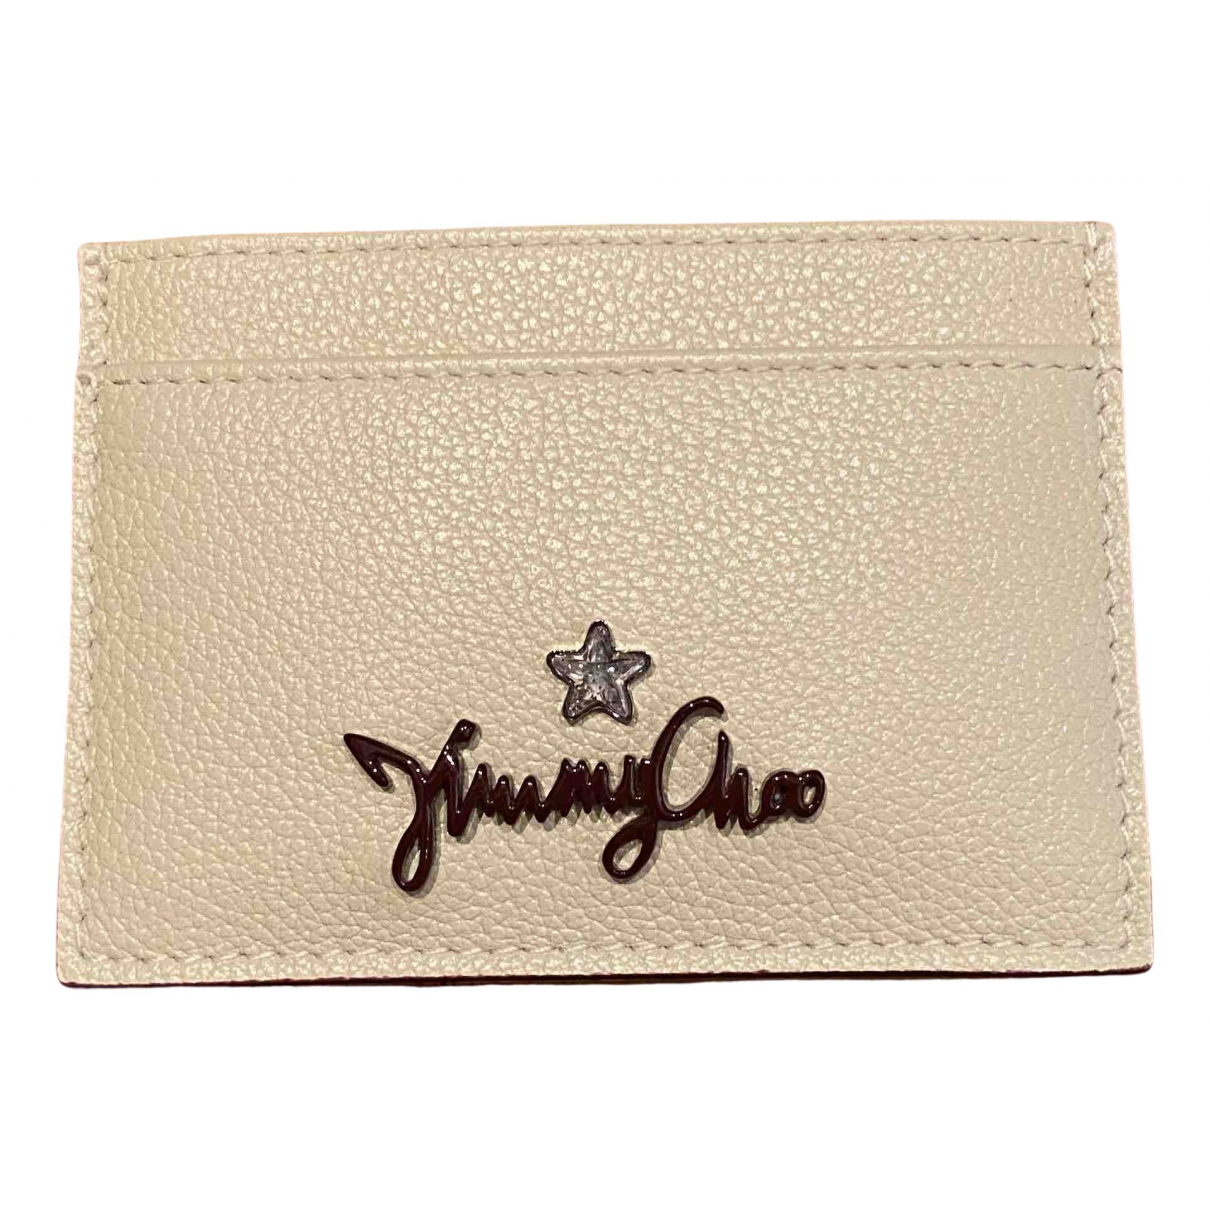 Jimmy Choo N Ecru Leather Purses, wallet & cases for Women N